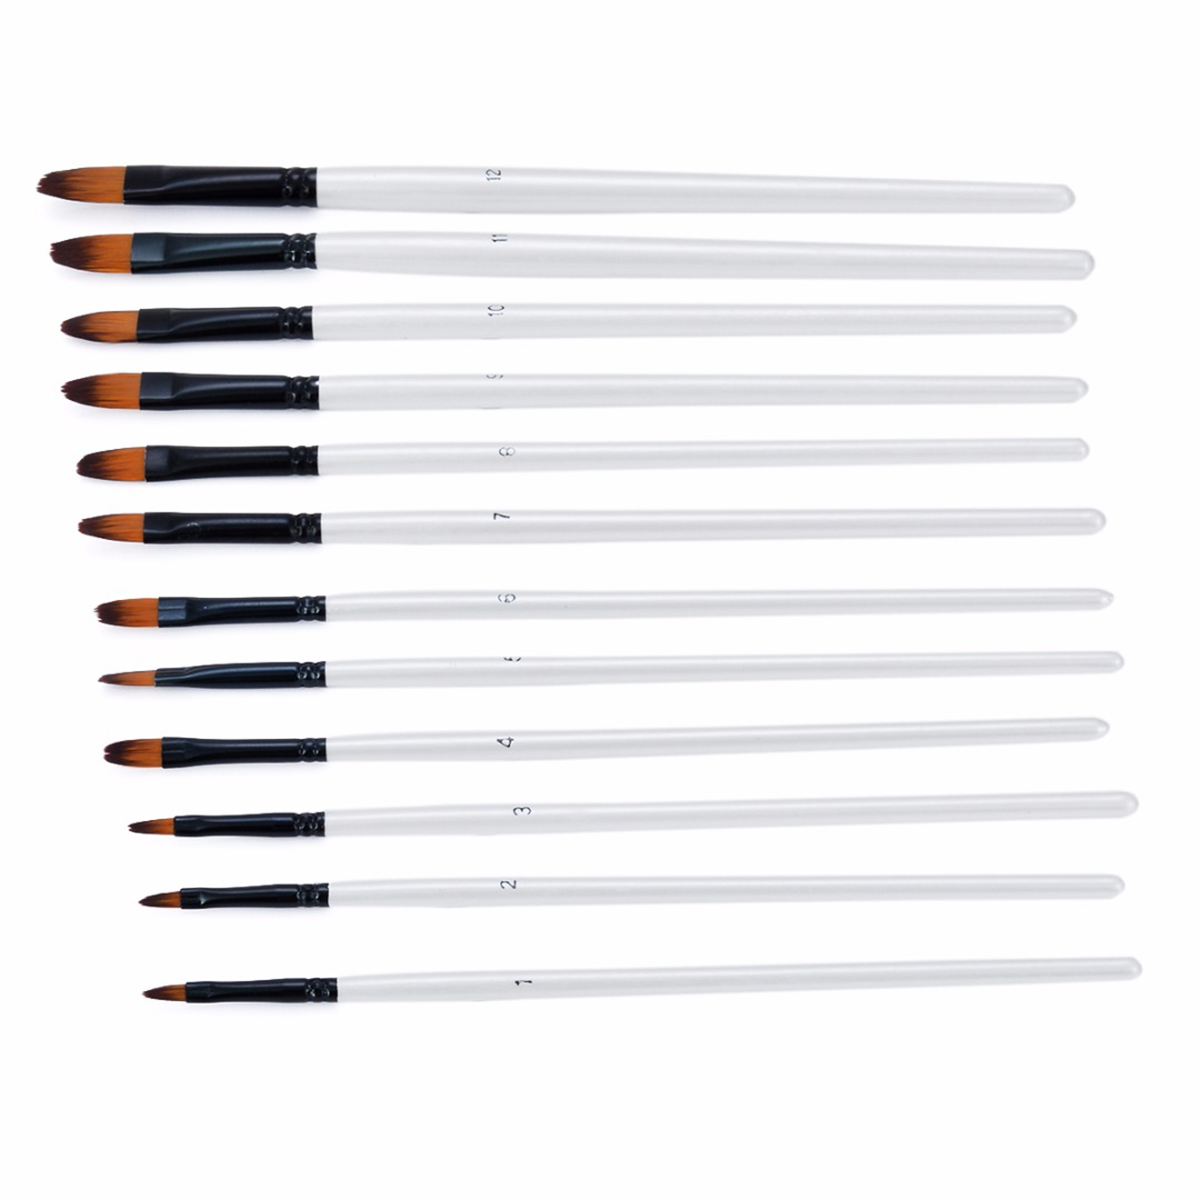 12pcs Paint Brushes Set Artist Paint Brushes Set Acrylic Oil Watercolour Painting Art Craft For Painting Exercises Painting Exam